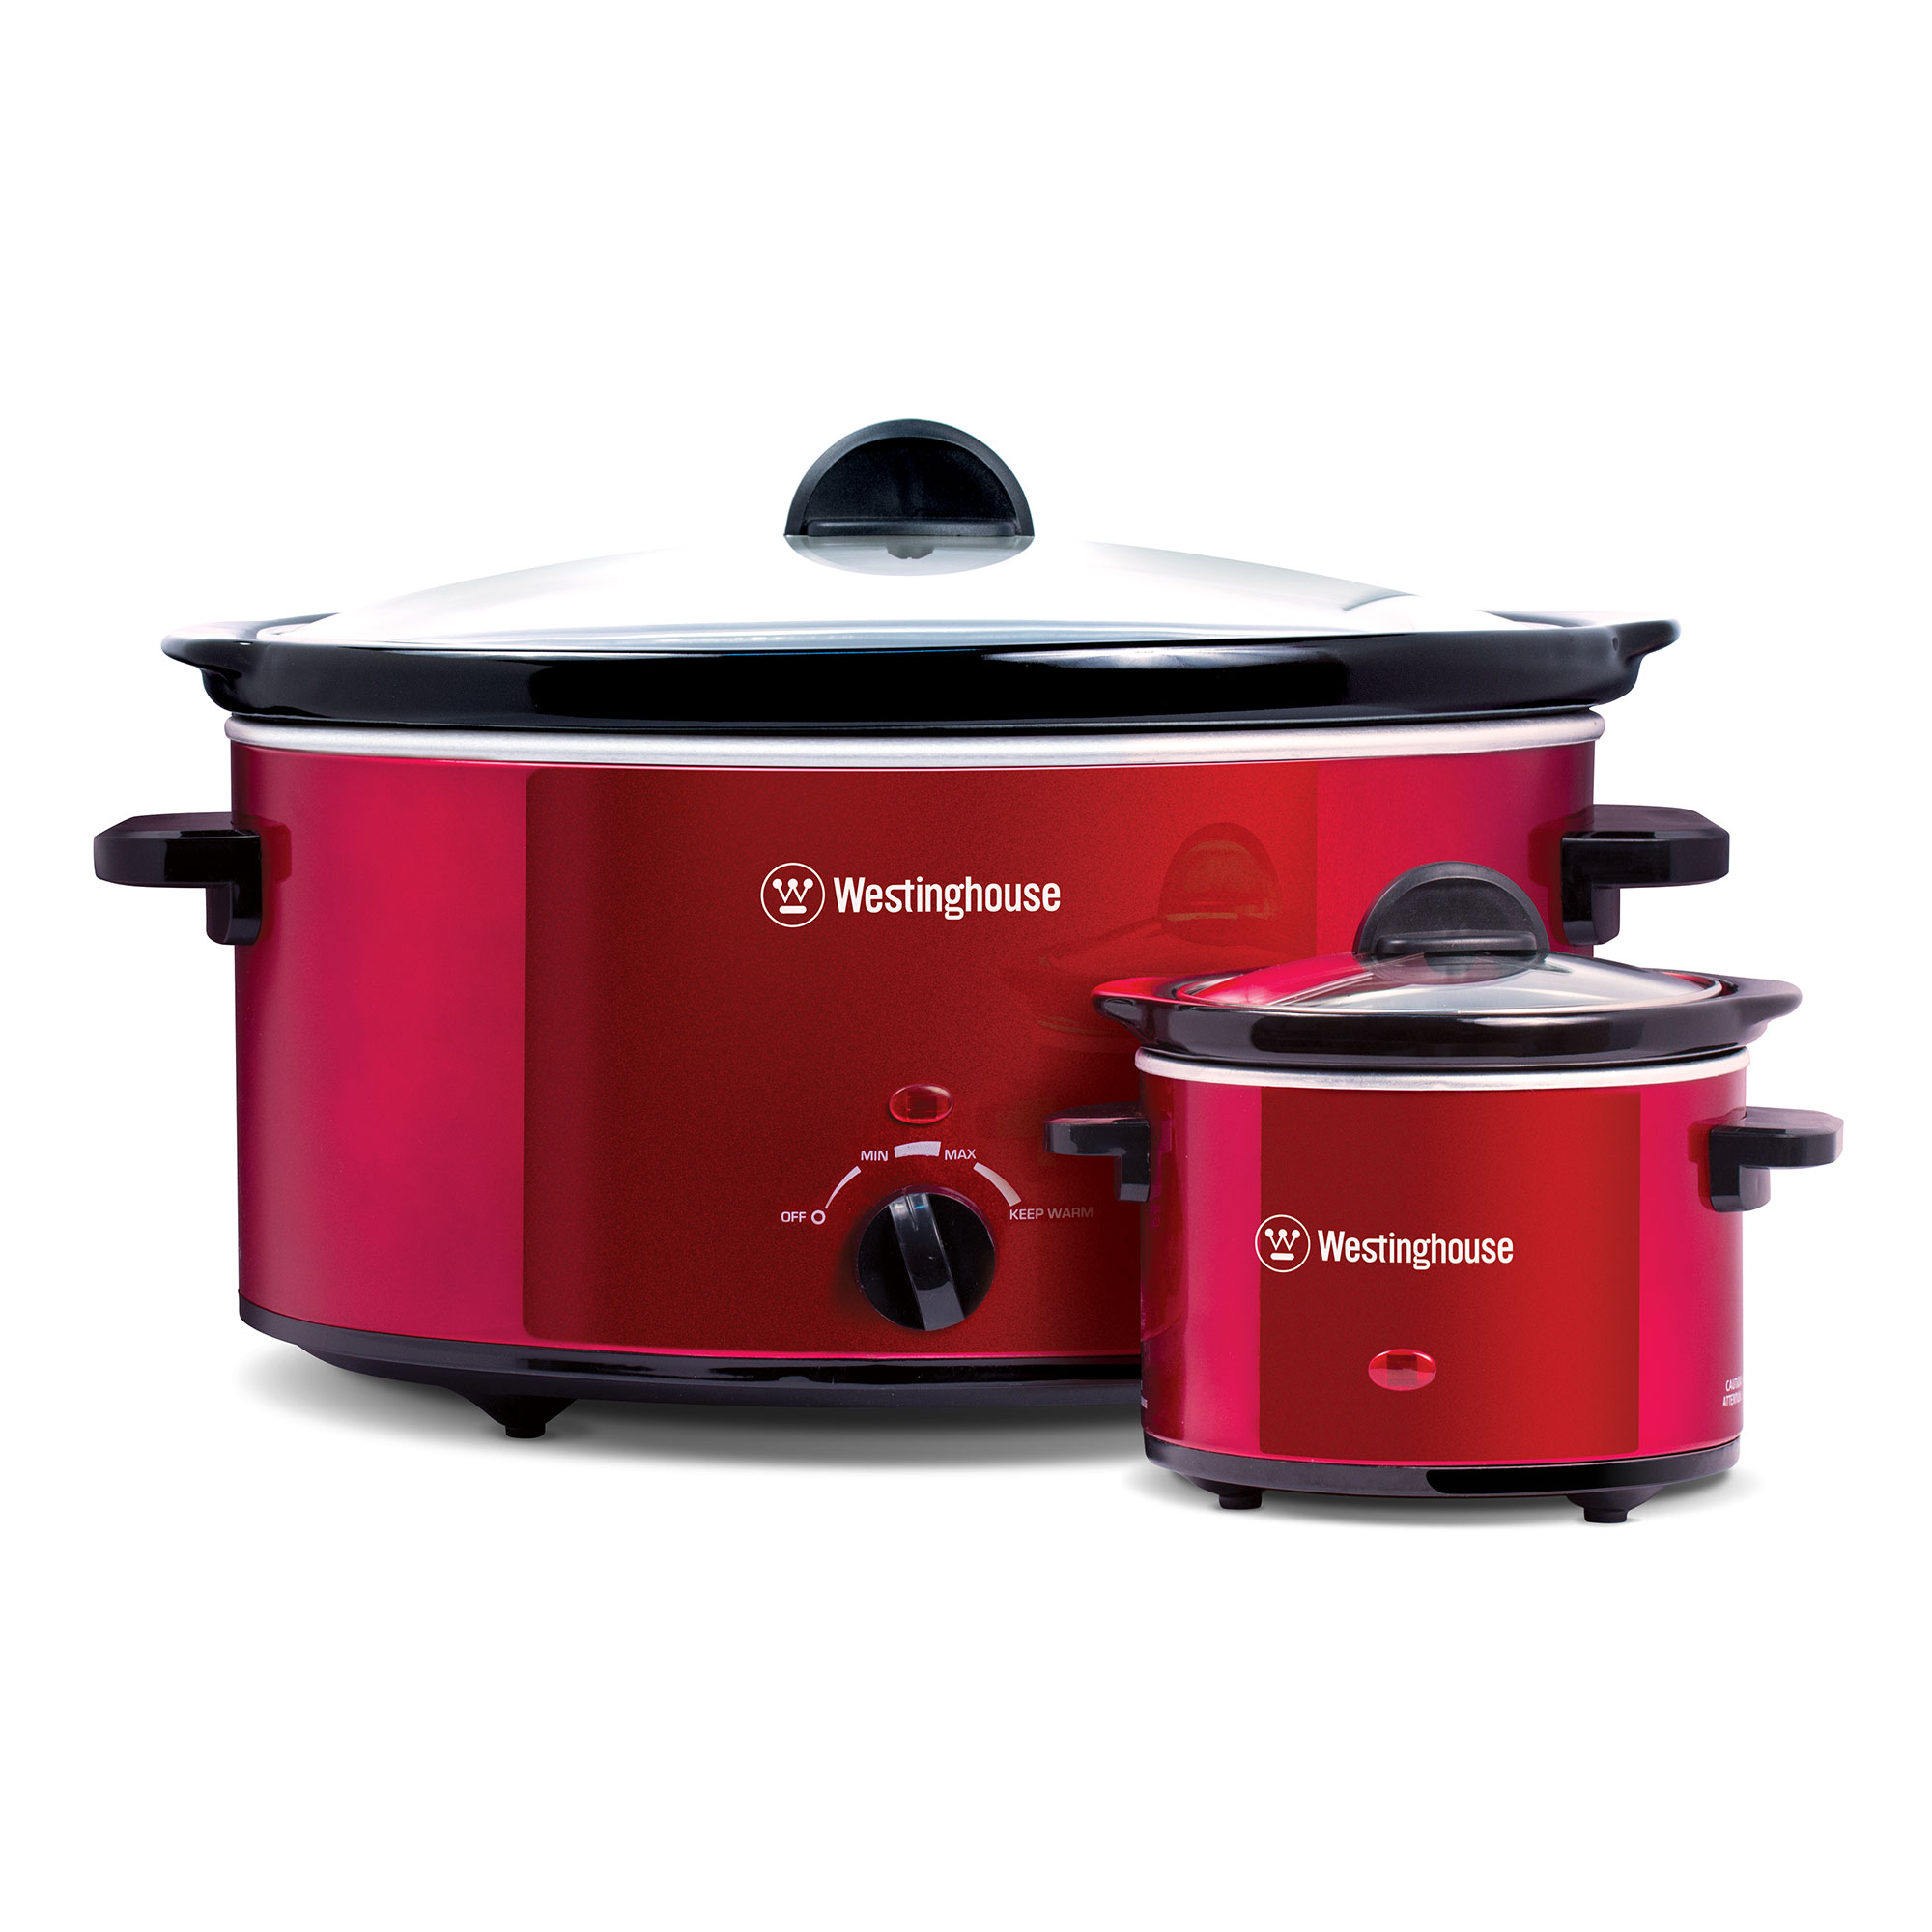 Westinghouse 8 Quart Stainless Steel Slow Cooker with Warmer, Red | WSC801RD